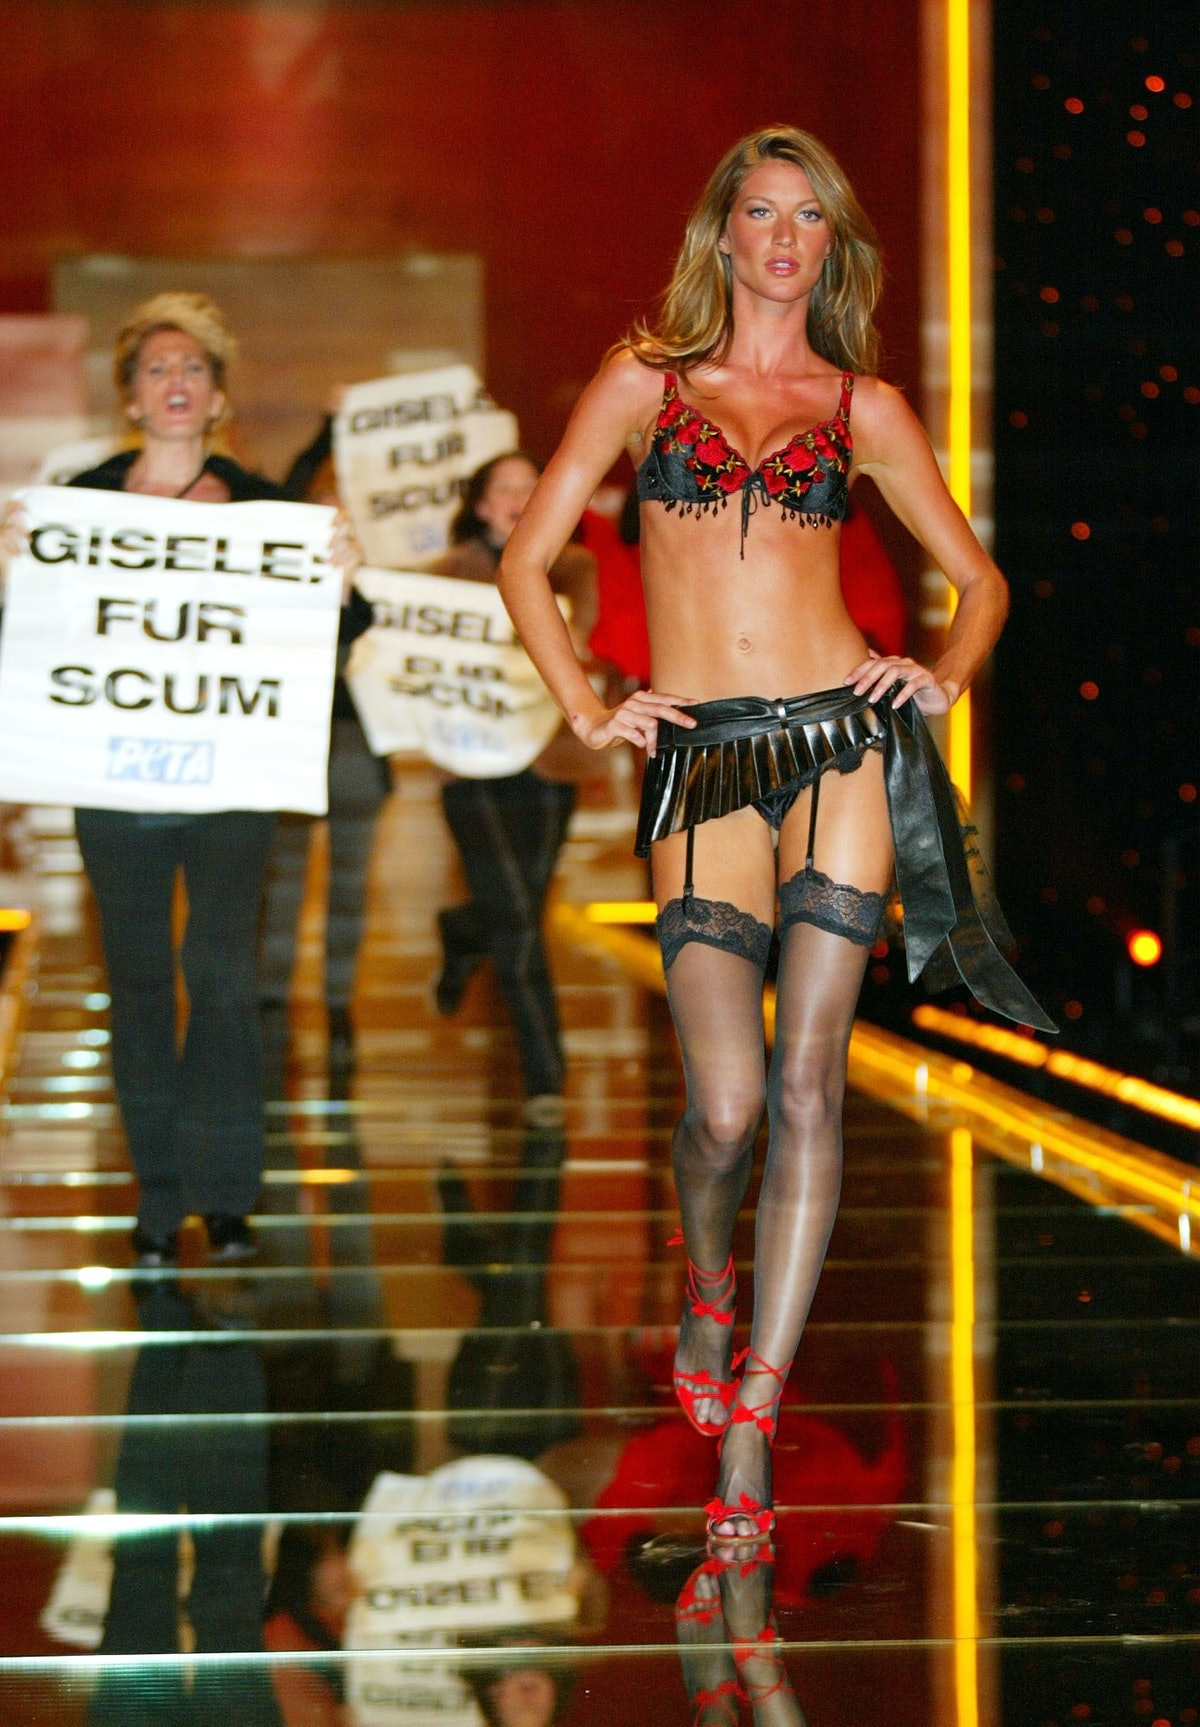 Gisele Bünchen walking in front of protesters on the runway